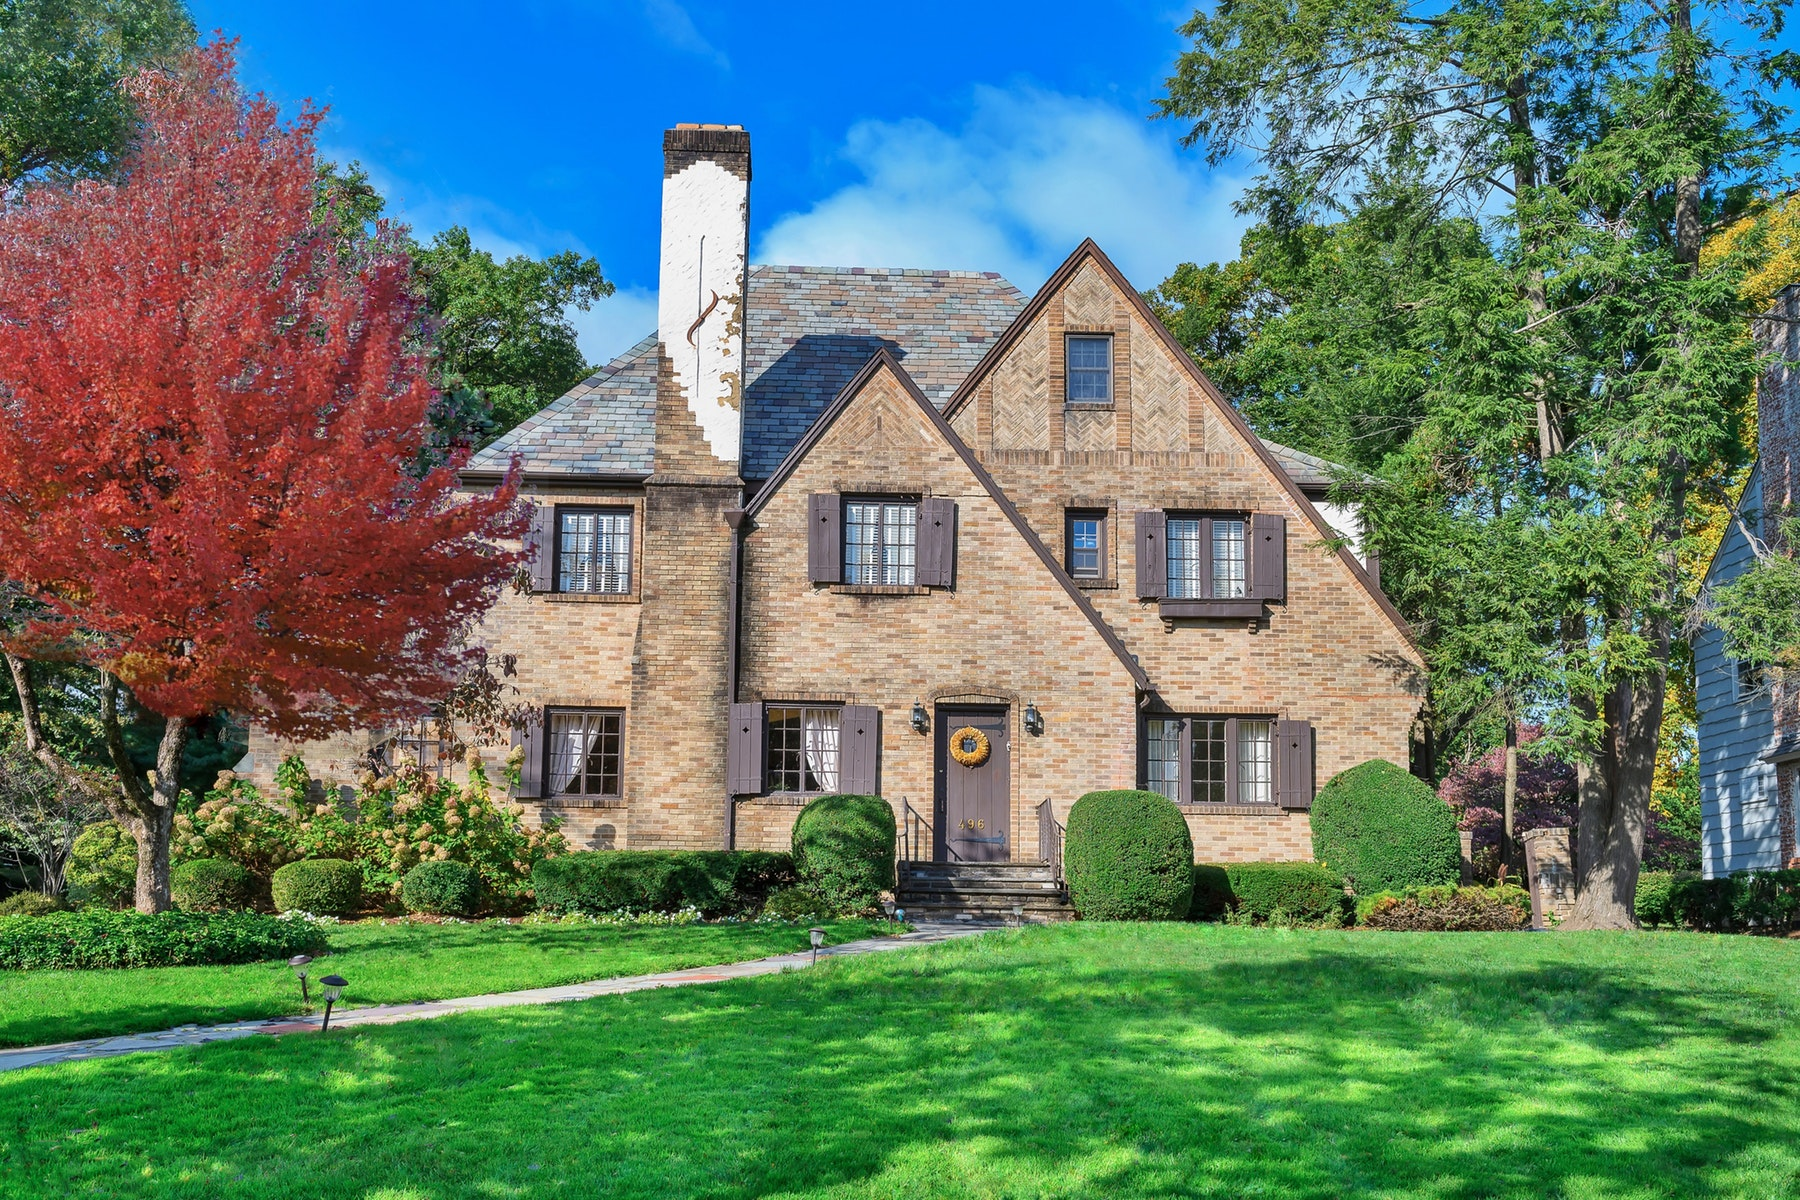 Single Family Homes for Sale at Classic Tudor 496 Ridgewood Avenue, Glen Ridge, New Jersey 07028 United States